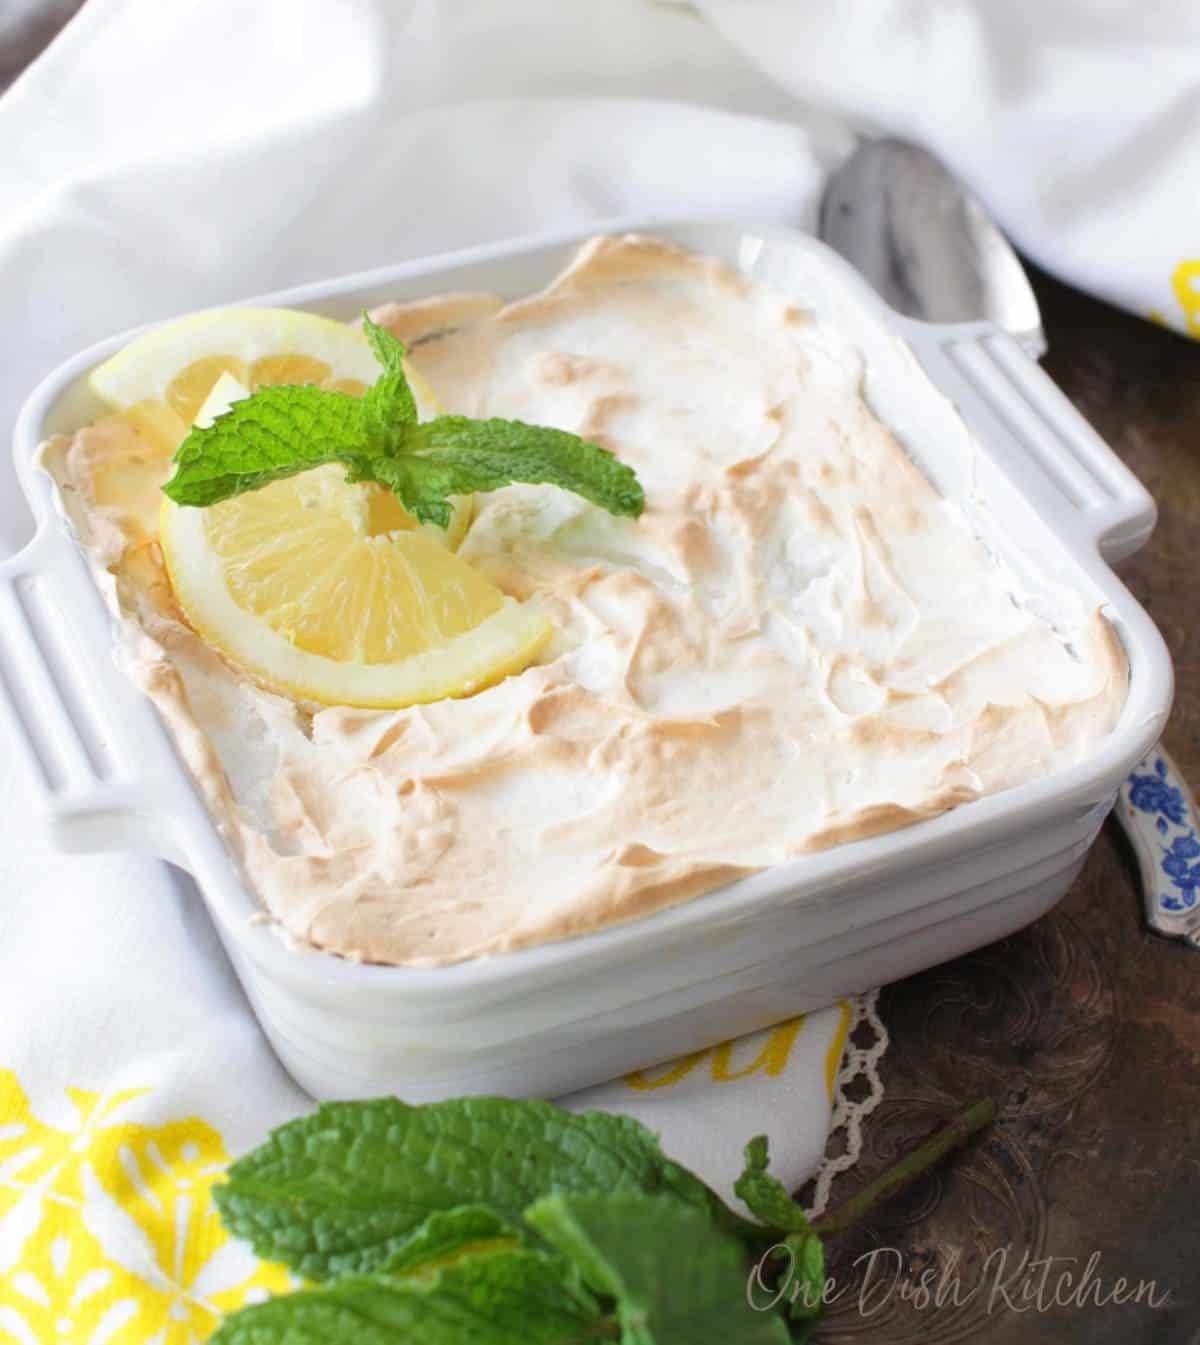 A mini lemon pie garnished with lemon slices and a sprig of fresh mint on a tray next to a yellow and white dish towel.